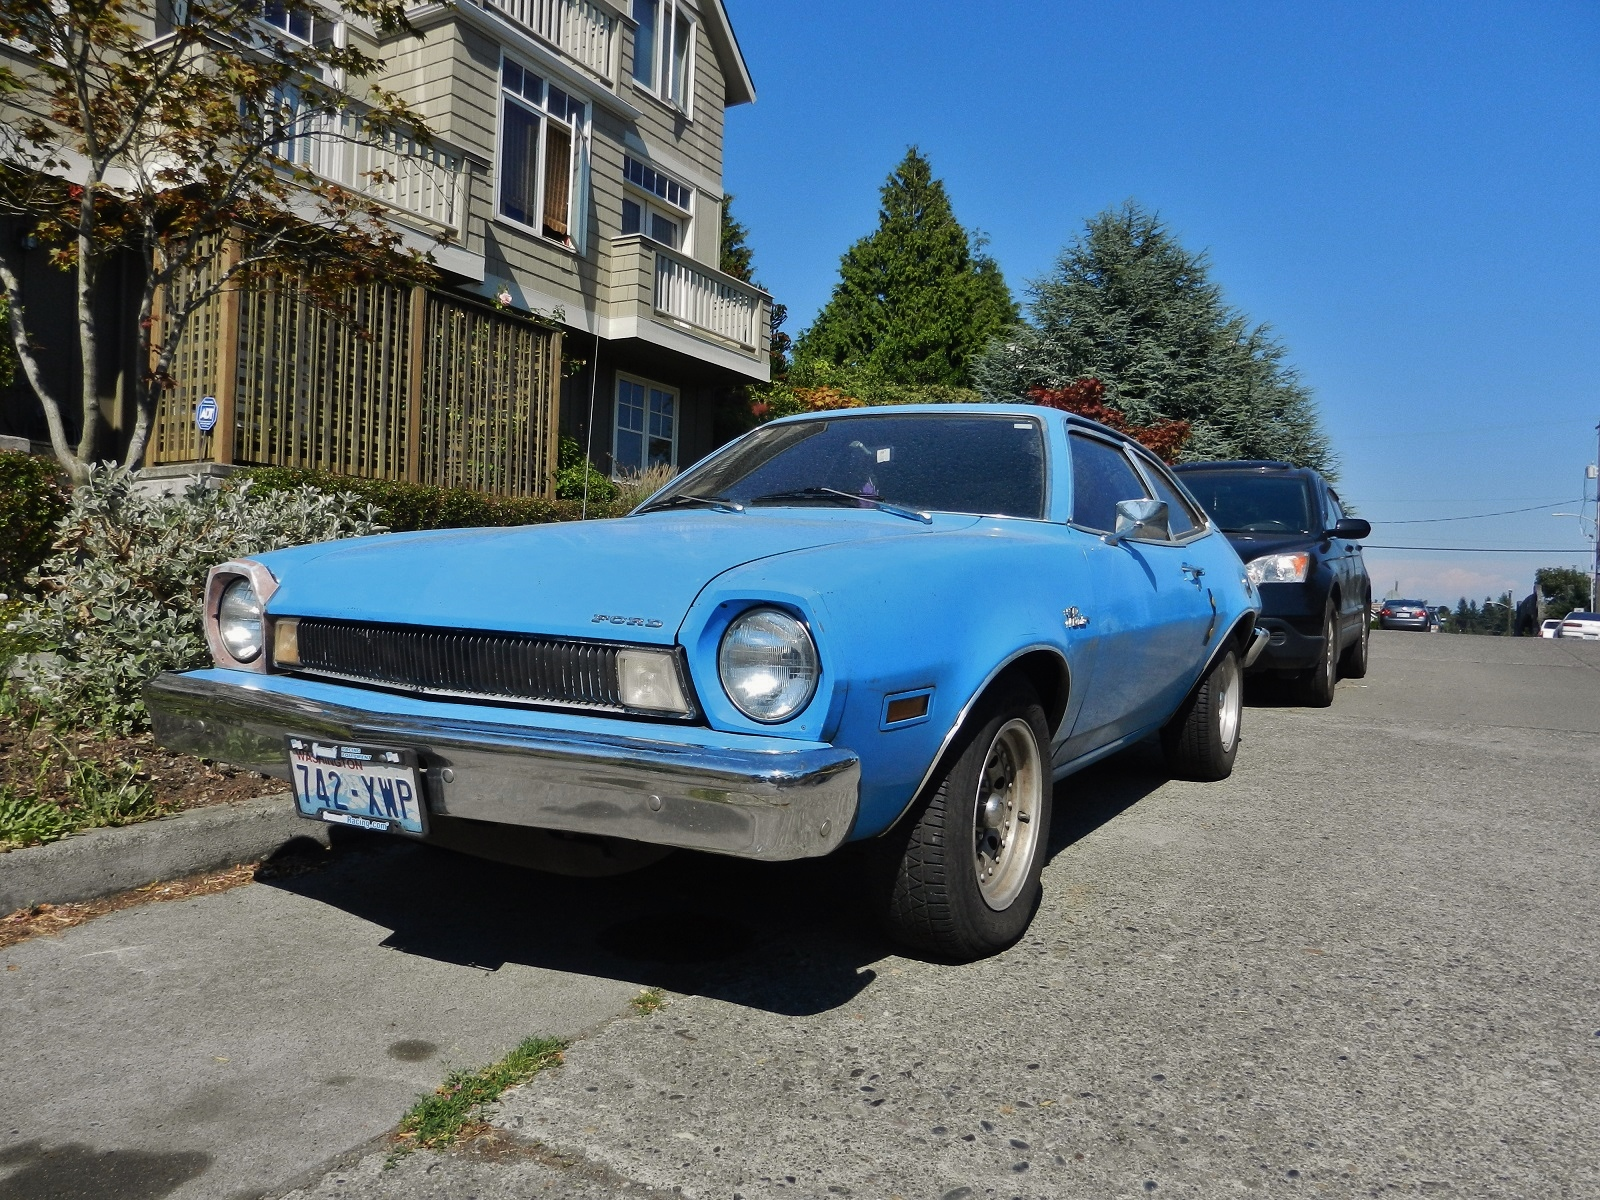 Seattle's Parked Cars: 1974 Ford Pinto Runabout